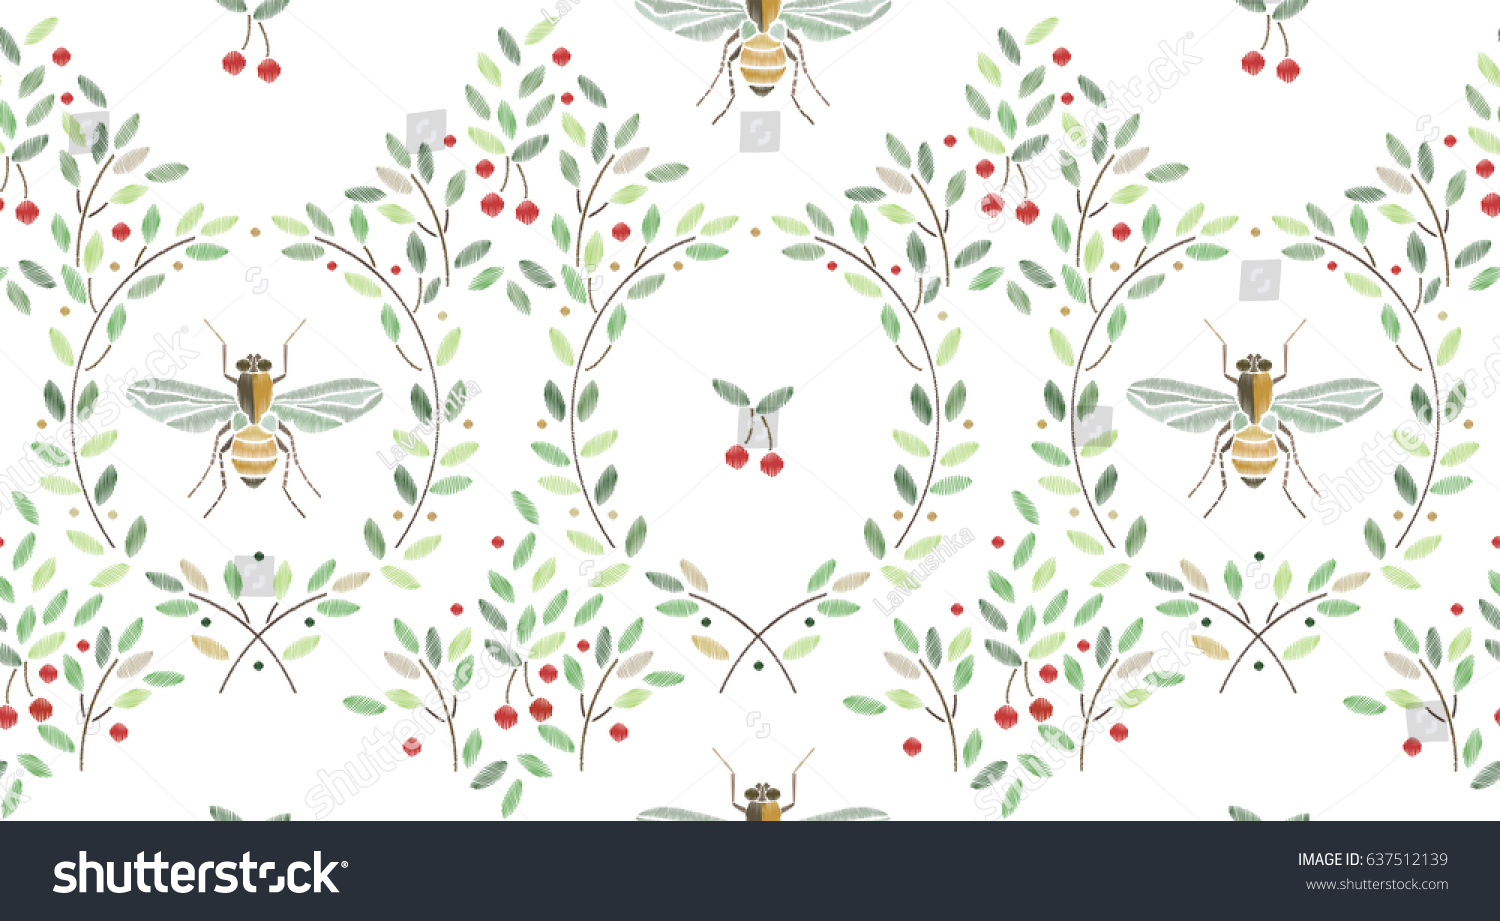 Vintage Seamless Pattern With Bees And Cherry Branches On Withe Background For Textile Book Covers